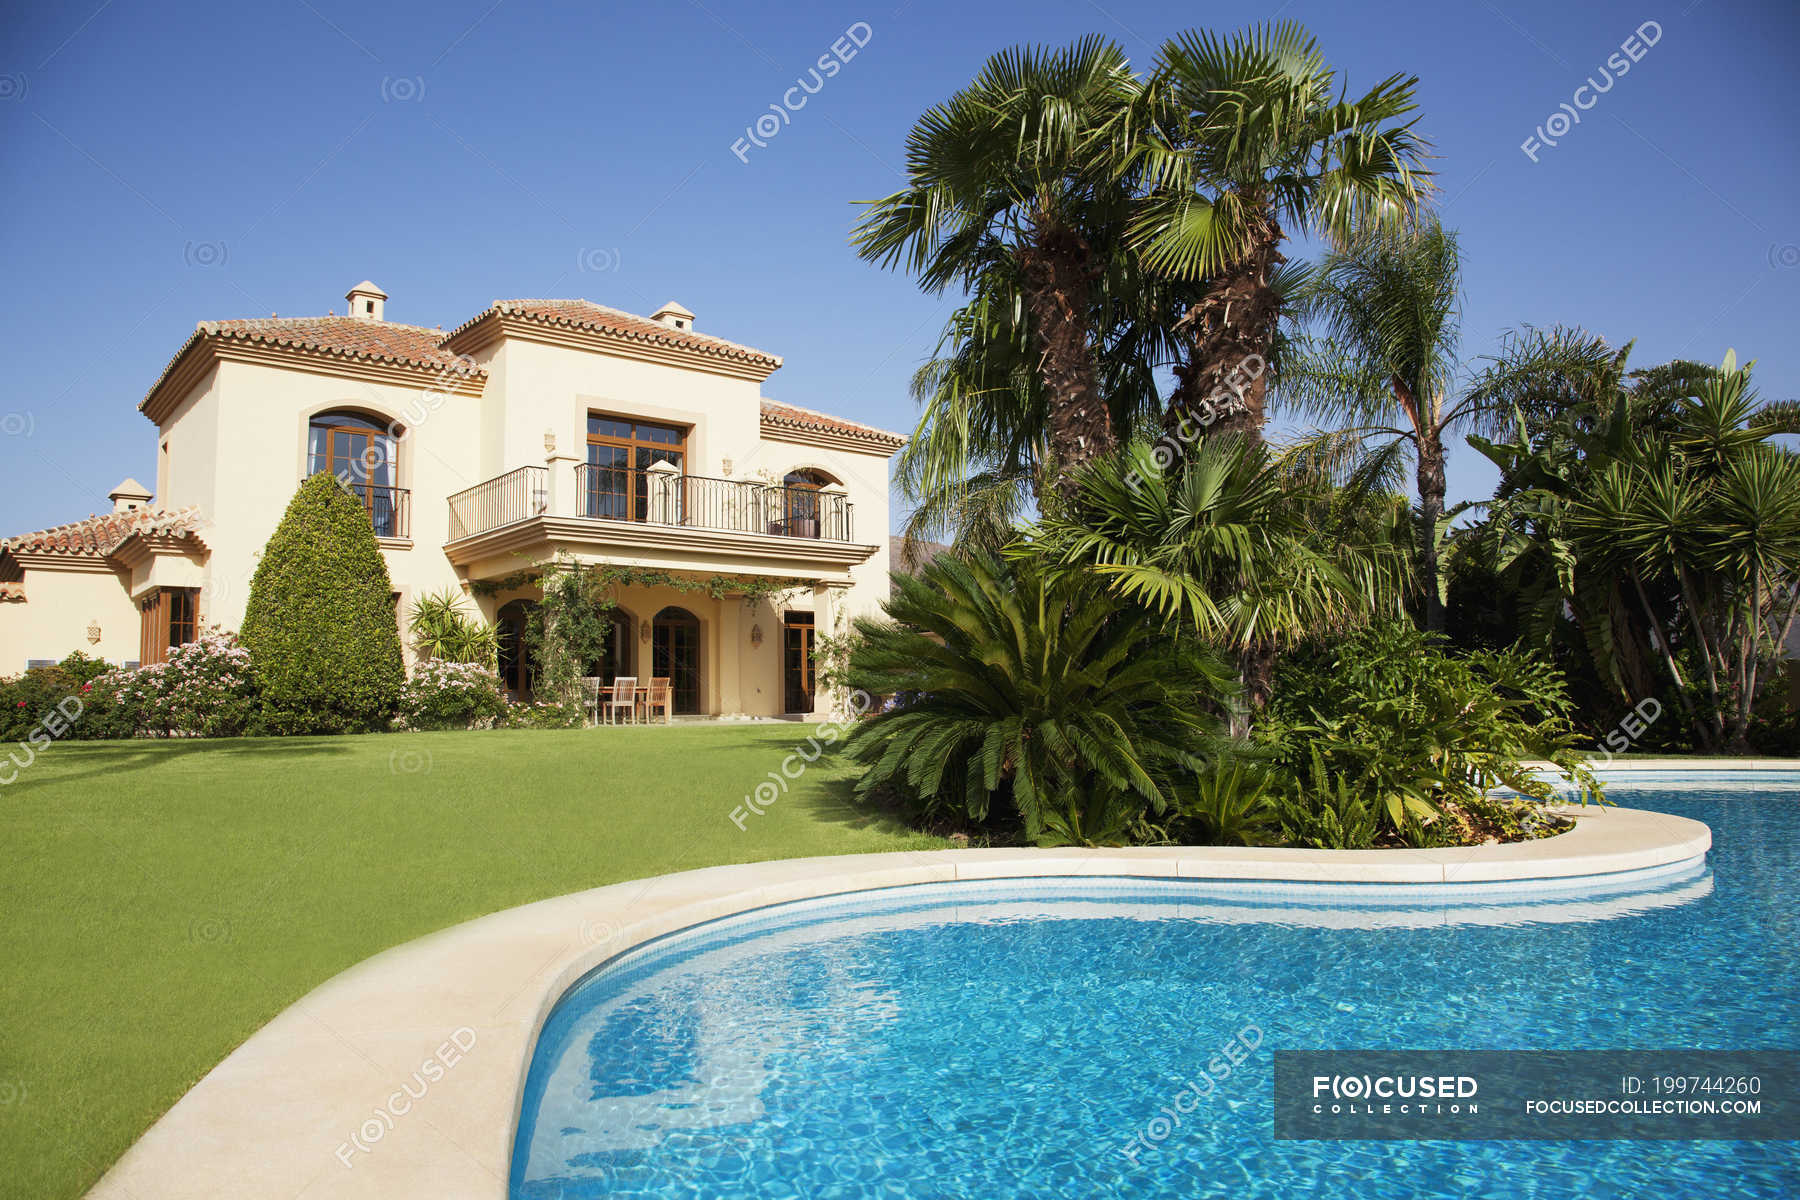 Swimming Pool And Spanish Villa Outdoors Architecture Stock Photo 199744260